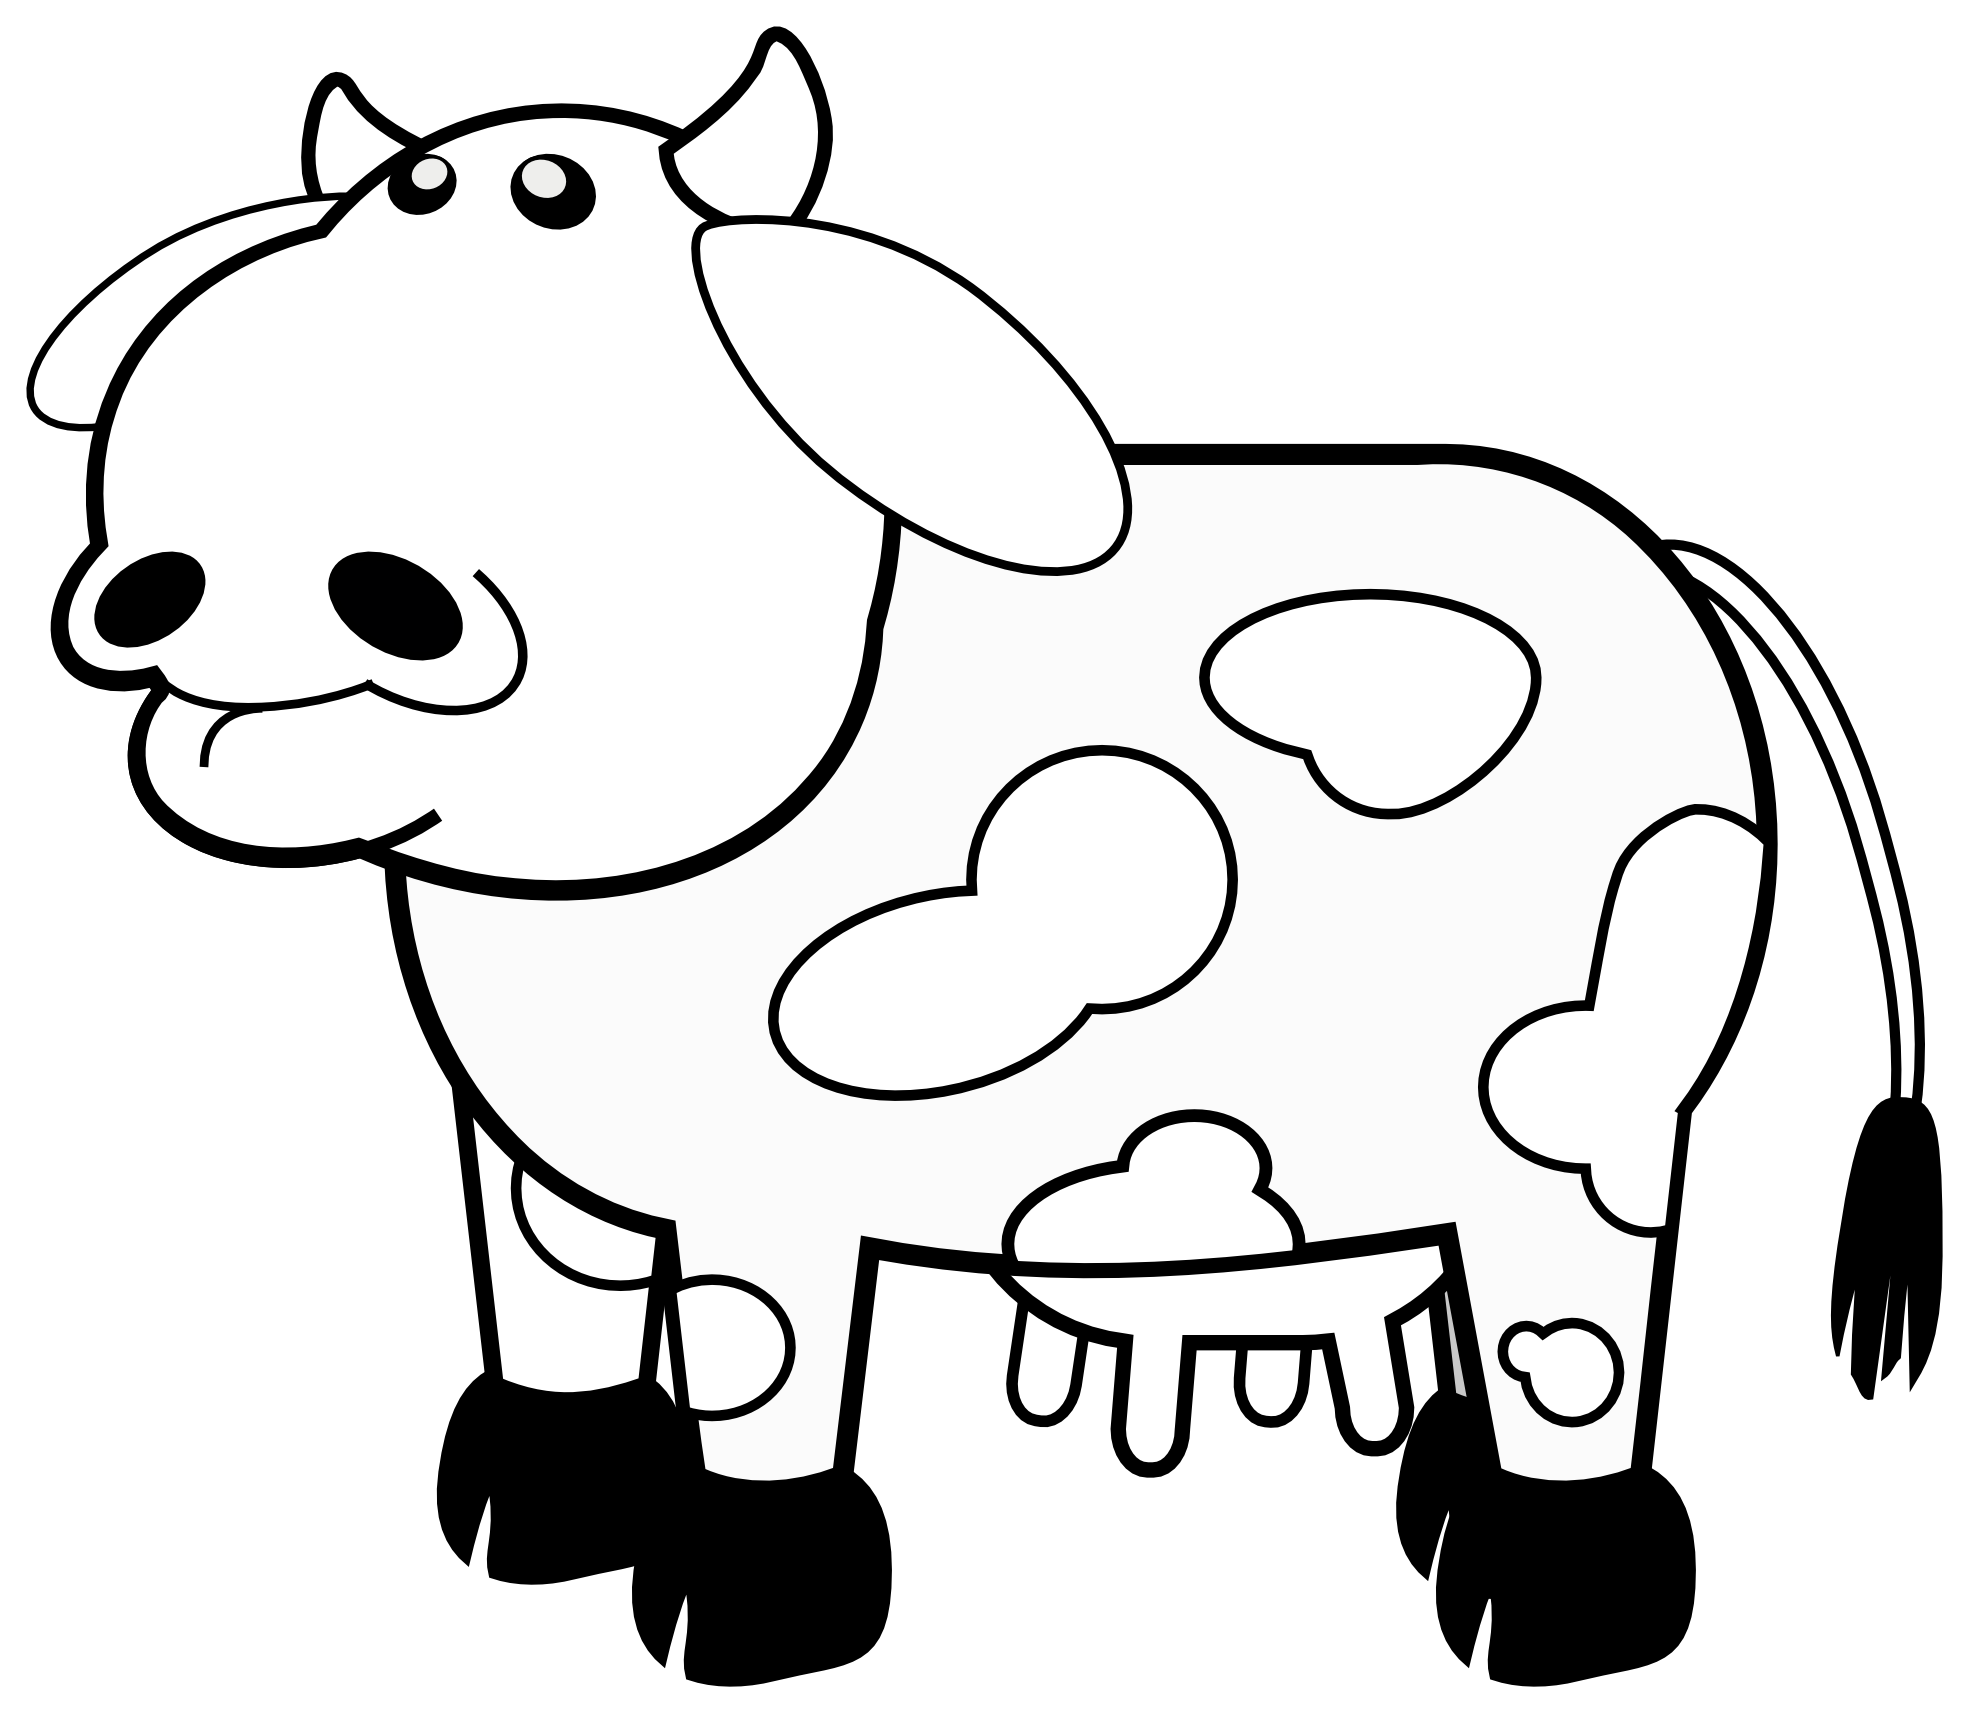 Armadillo clipart cute. Cow black and white